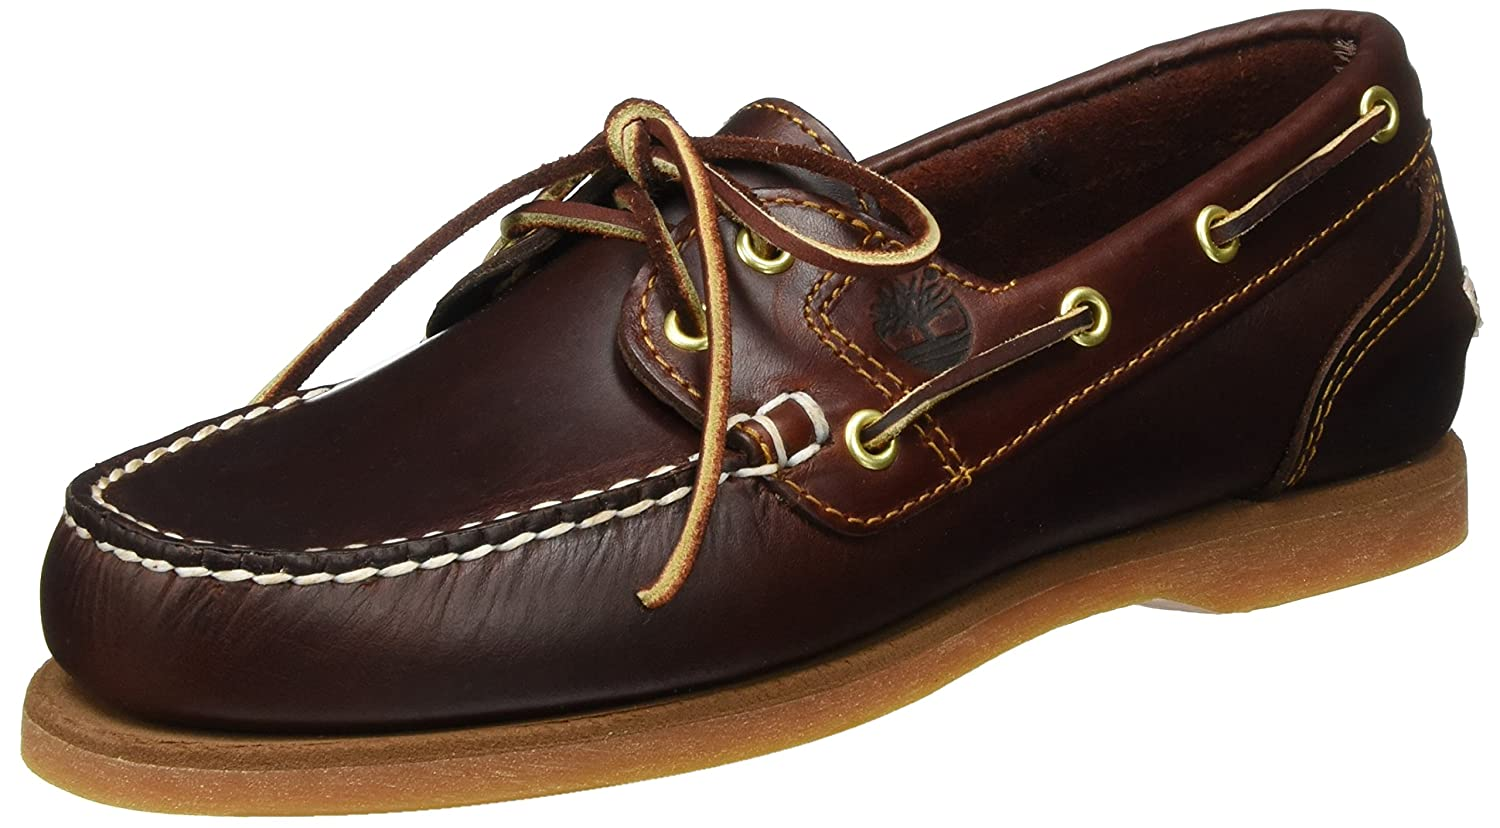 sperry top-sider shoes history footwear unlimited careers in foo